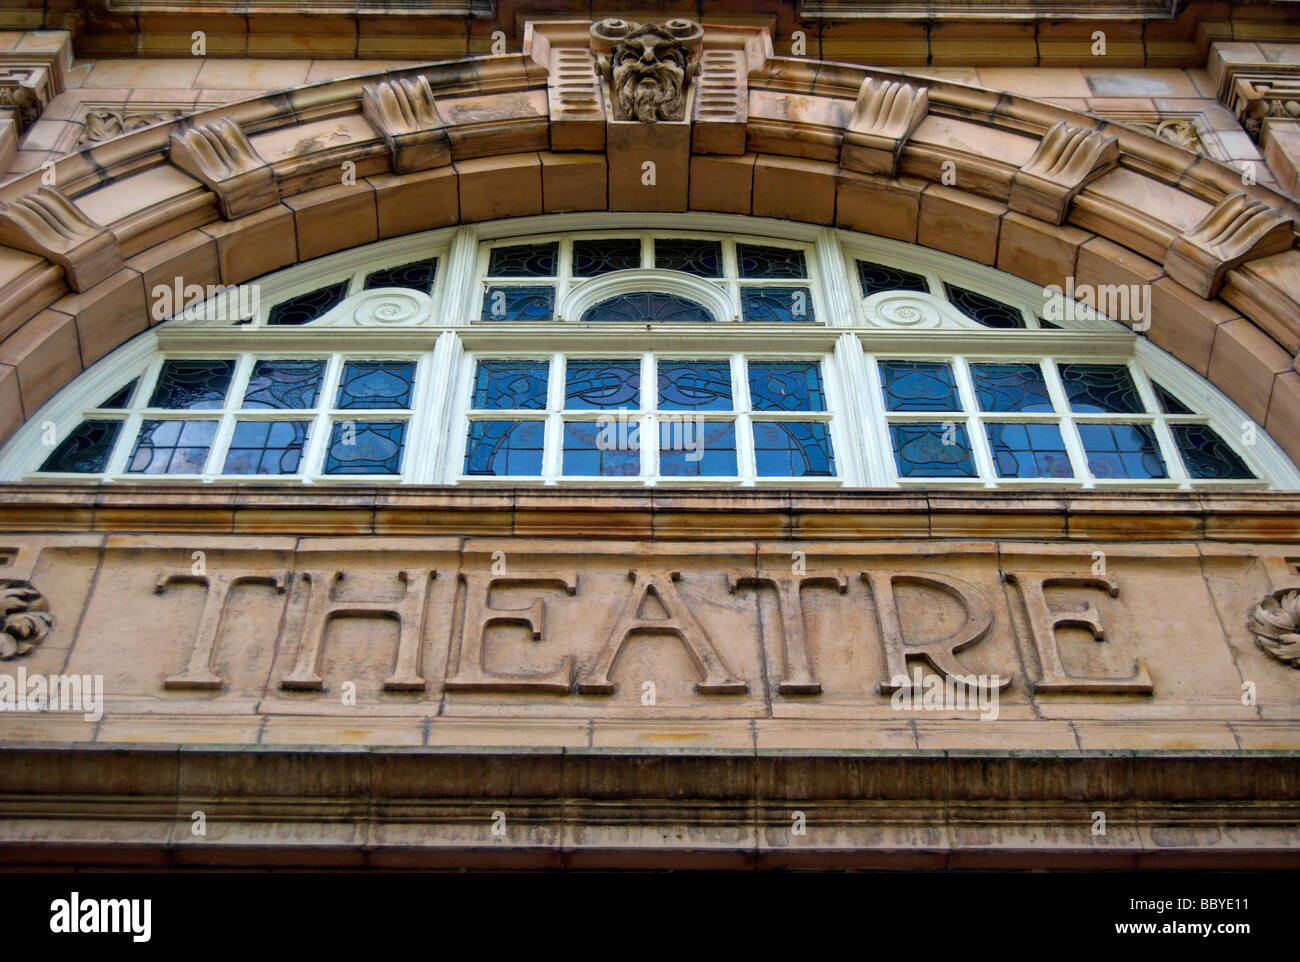 exterior of the richmond theatre, richmond upon thames, surrey, england, designed by the noted theatre designer - Stock Image